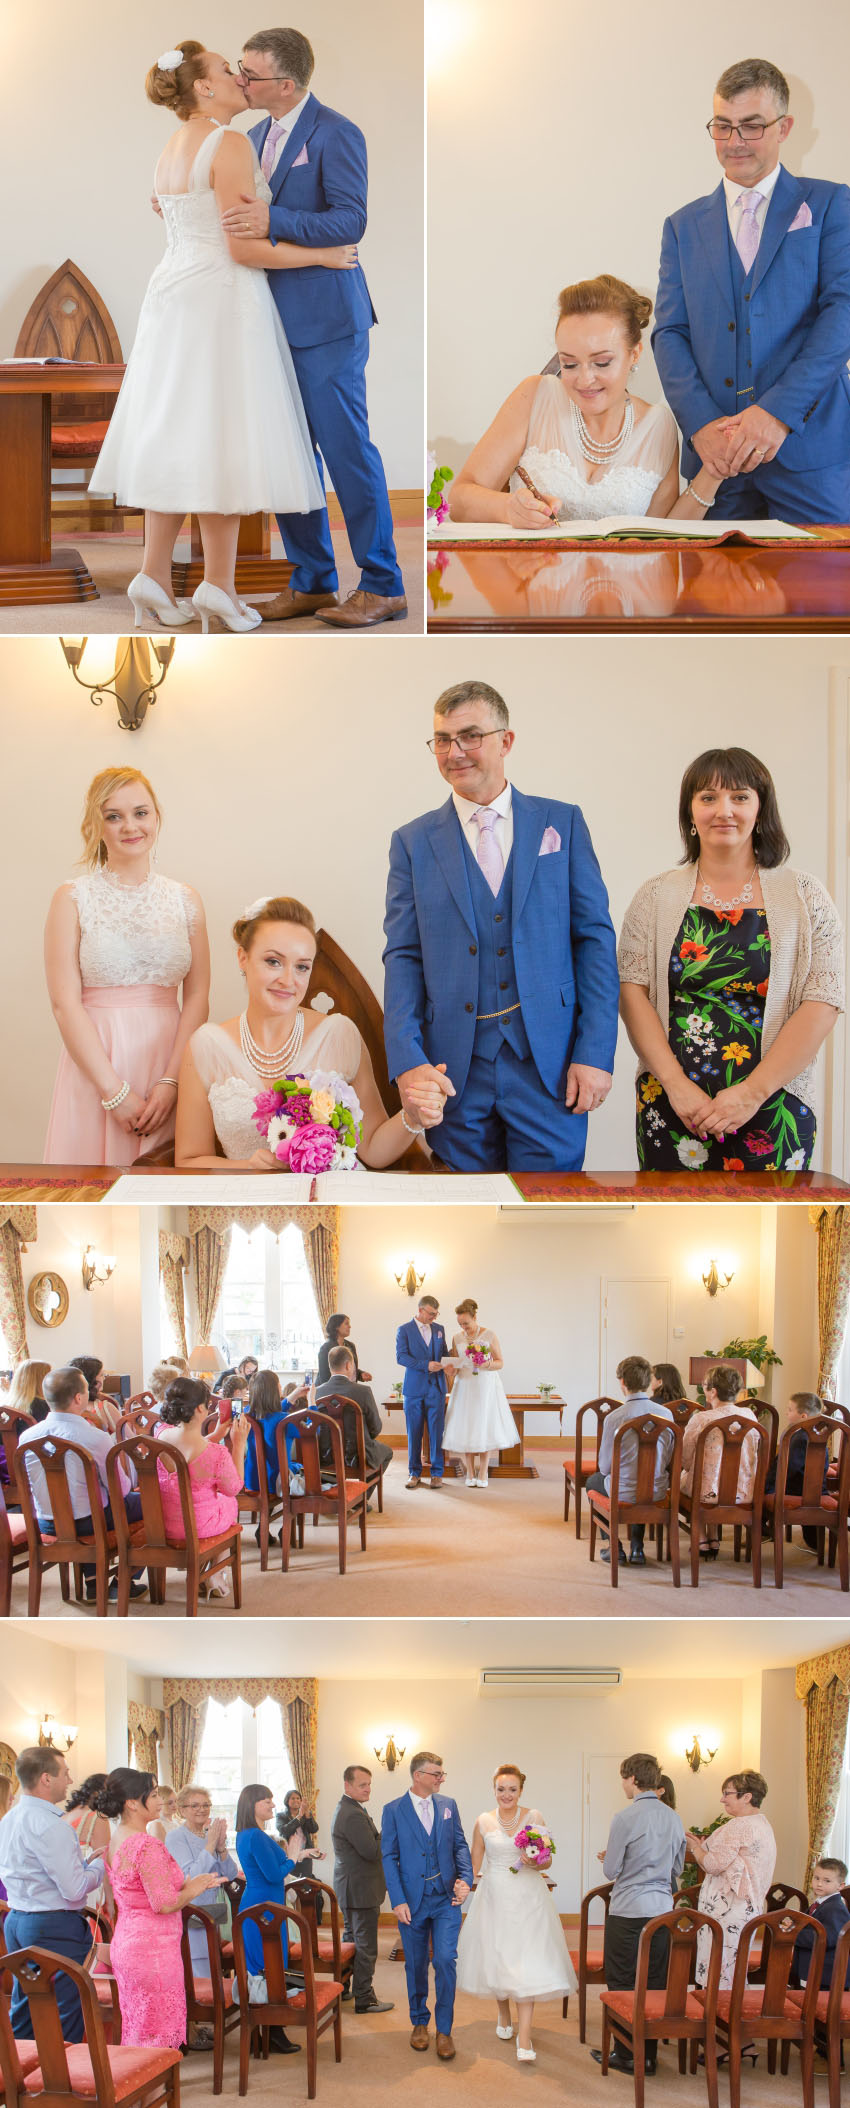 A Wedding photography at St Albans Register Office 05